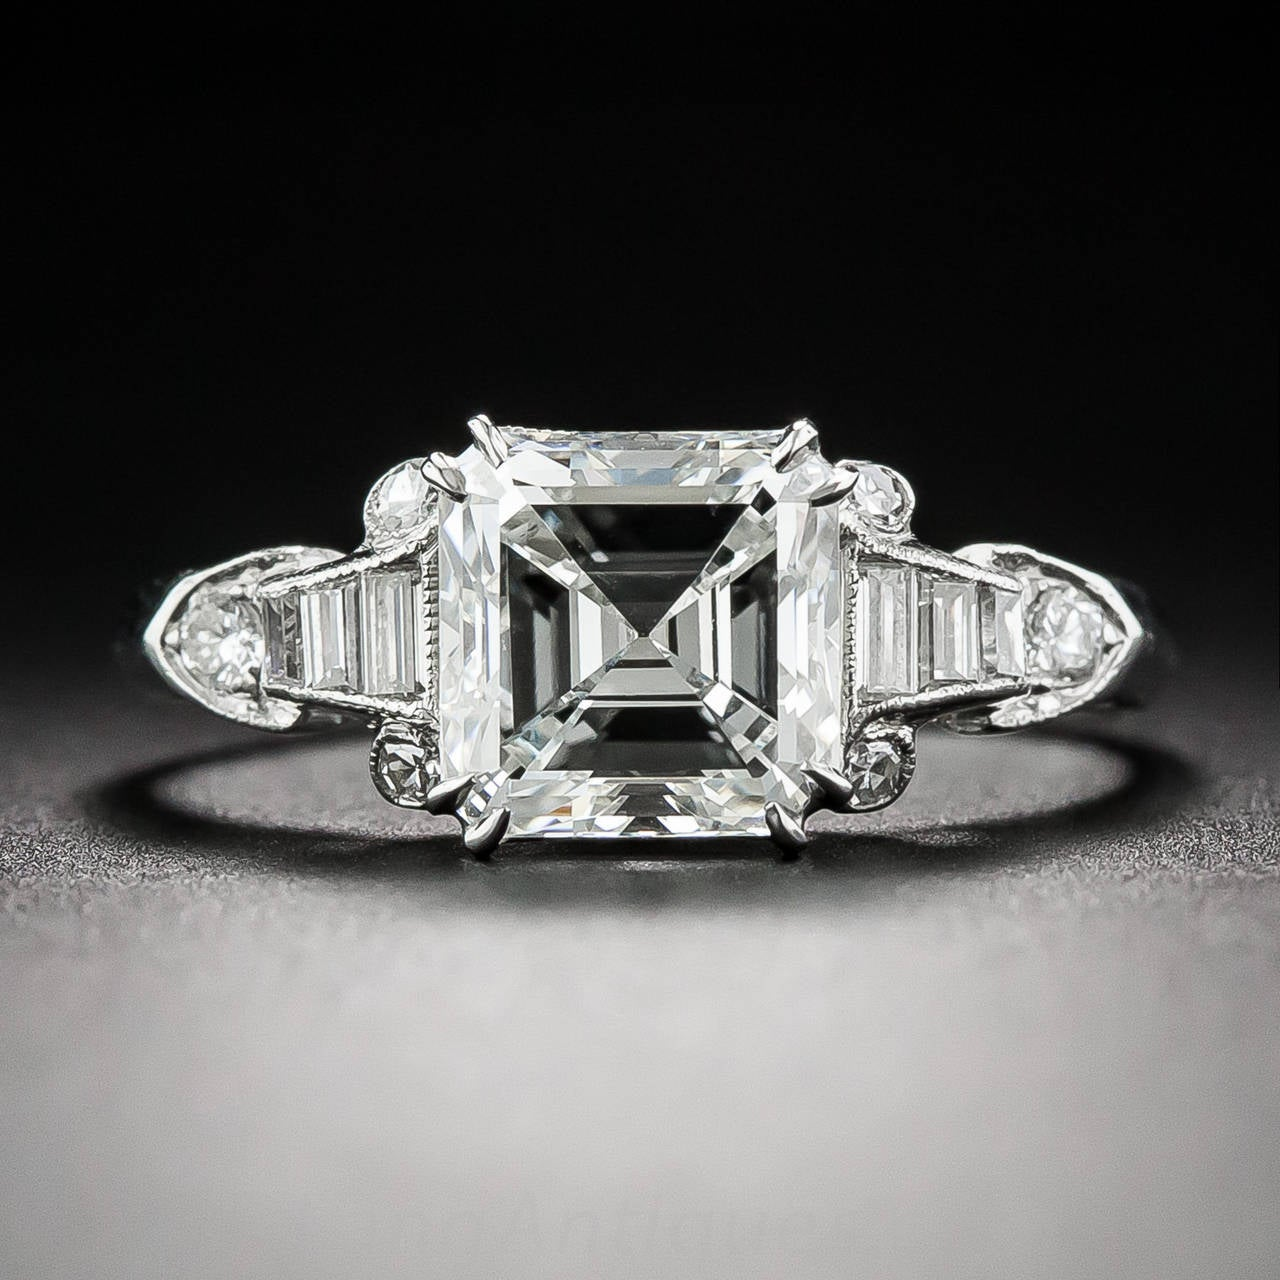 Art Deco GIA Cert 1 98 Carat Square Cut Diamond Platinum Engagement Ring at 1